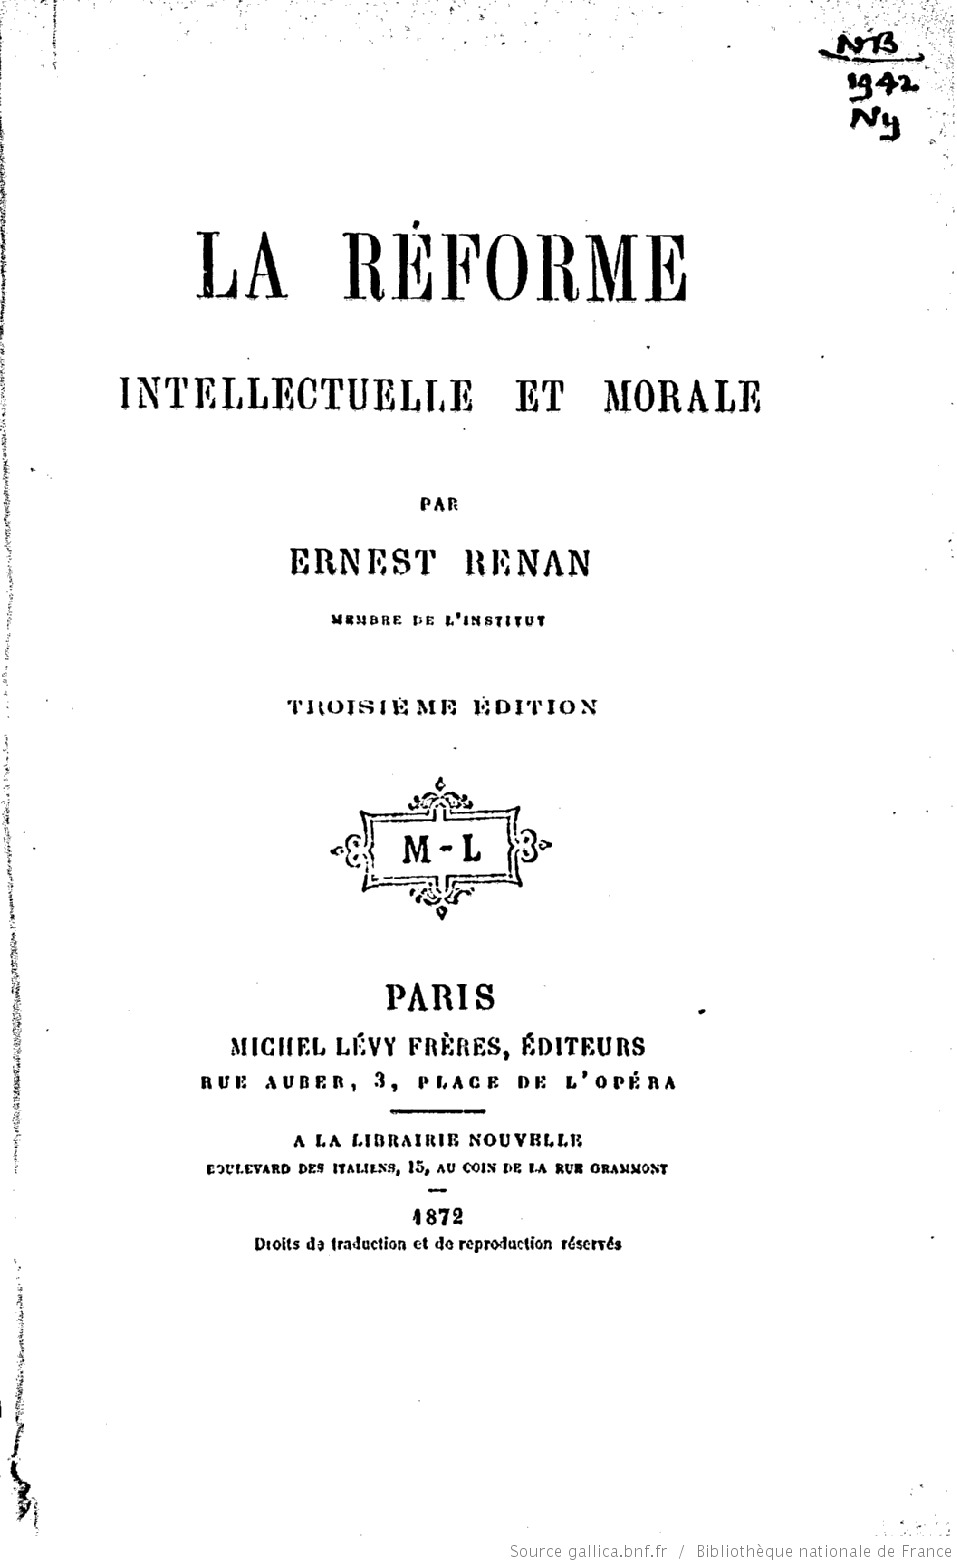 La Réforme Intellectuelle et Morale de la France  by  Ernest Renan